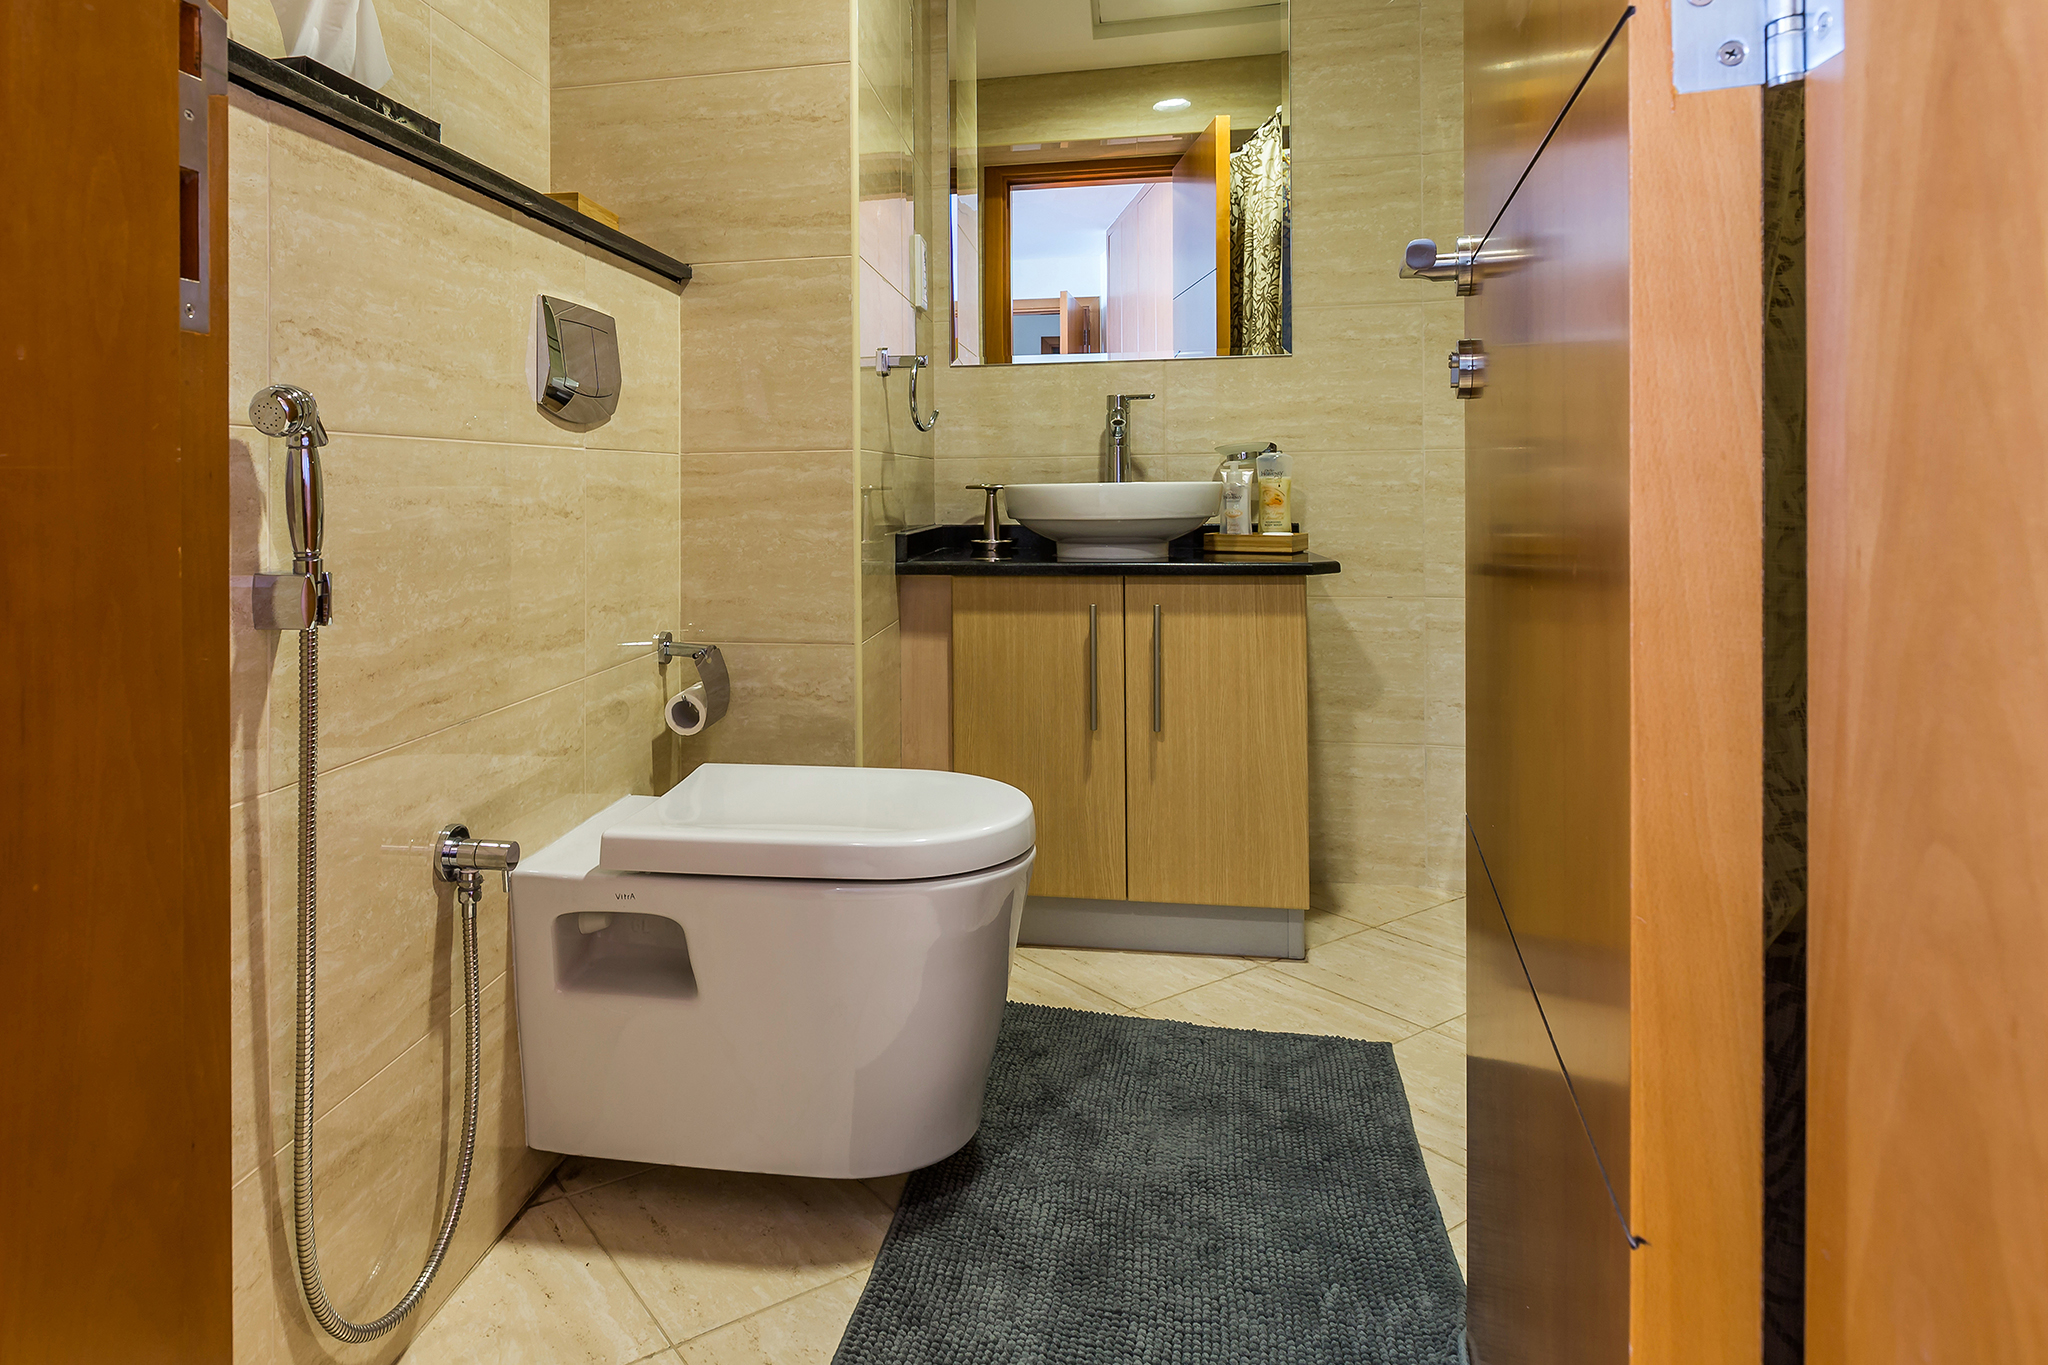 The en-suite offers a luxurious jacuzzi & shower which is a great way to unwind during your stay